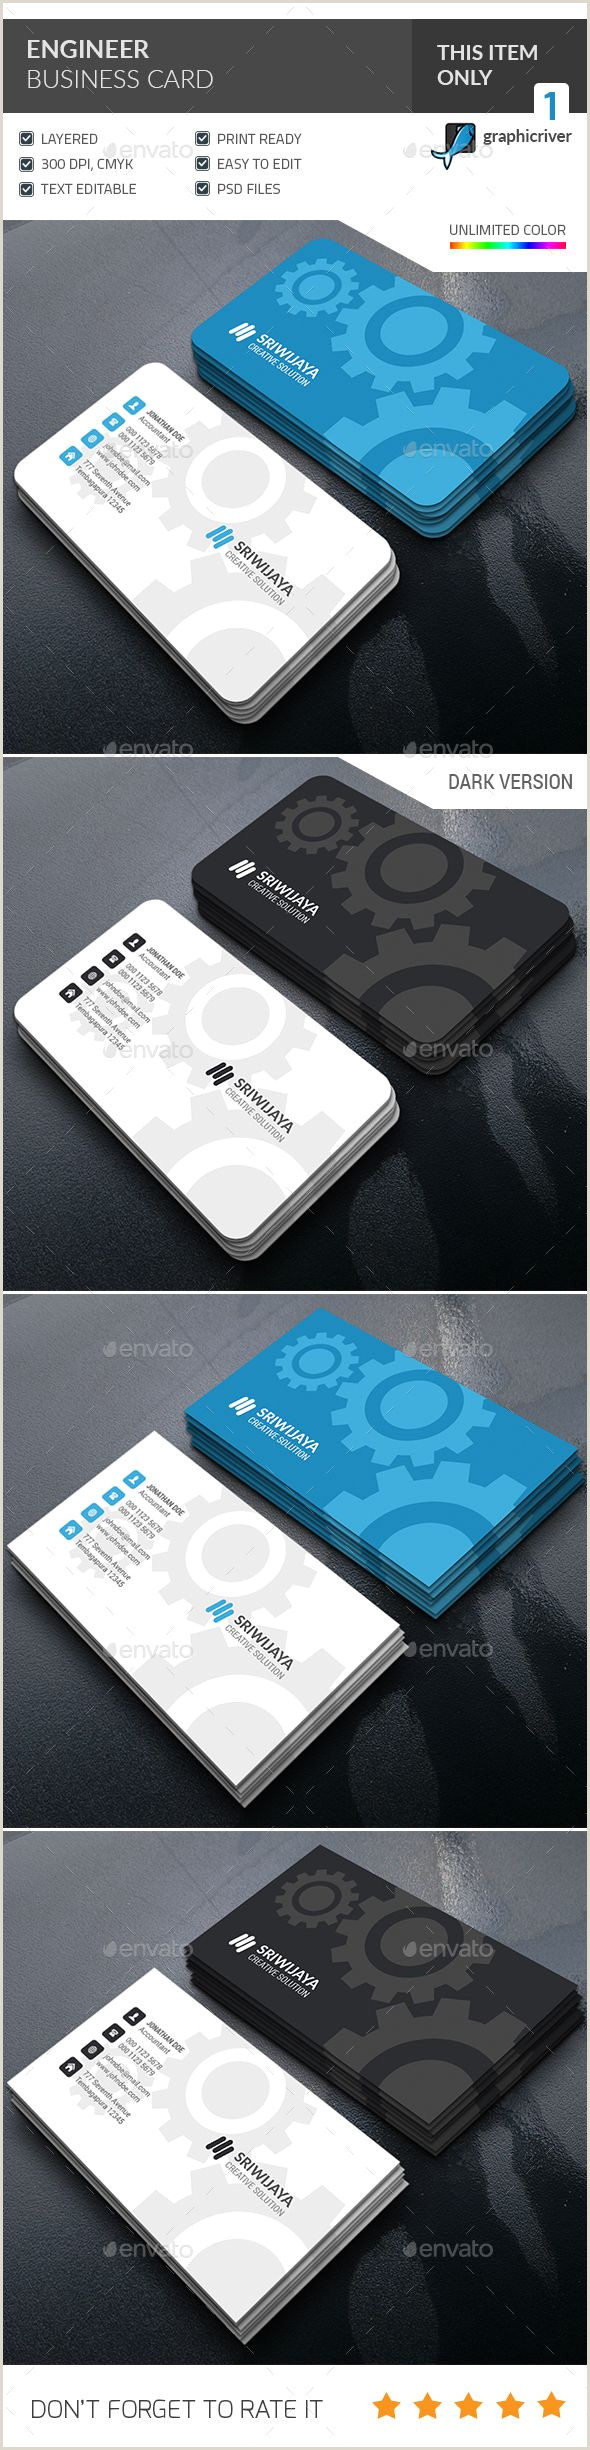 Unique Business Cards For Engineers Engineer Business Card